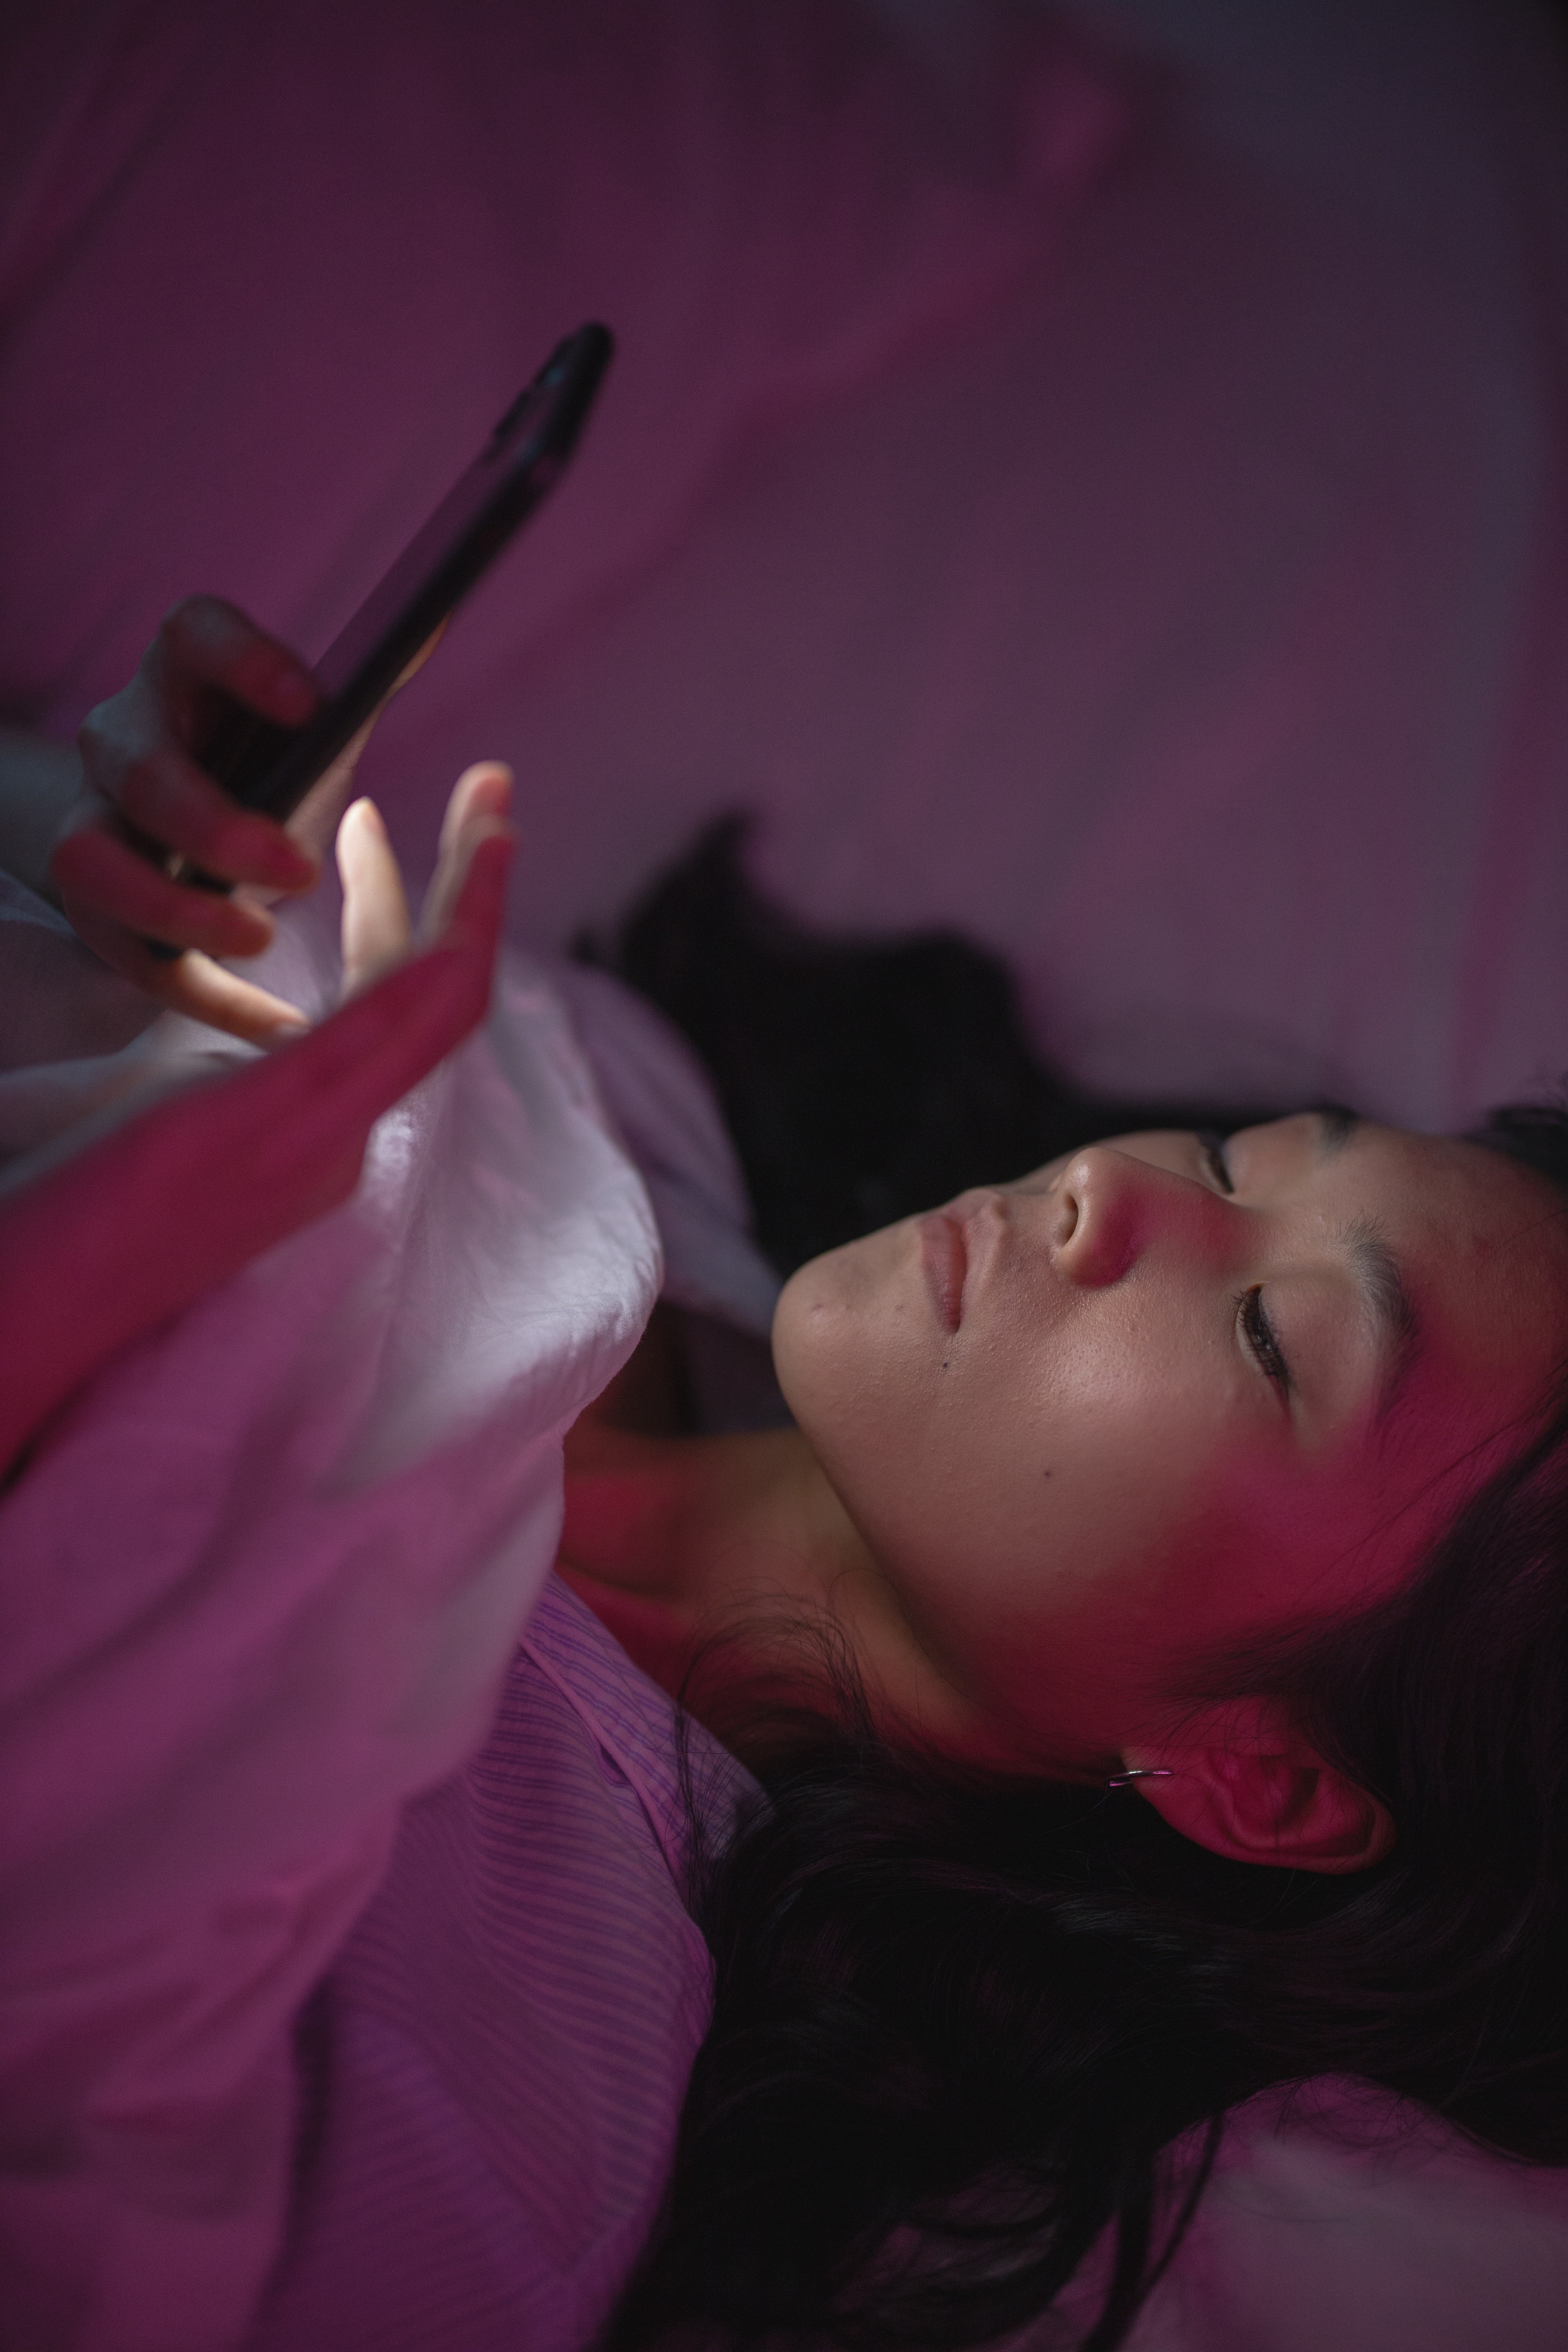 A lady uses her phone while lying down on bed at night.